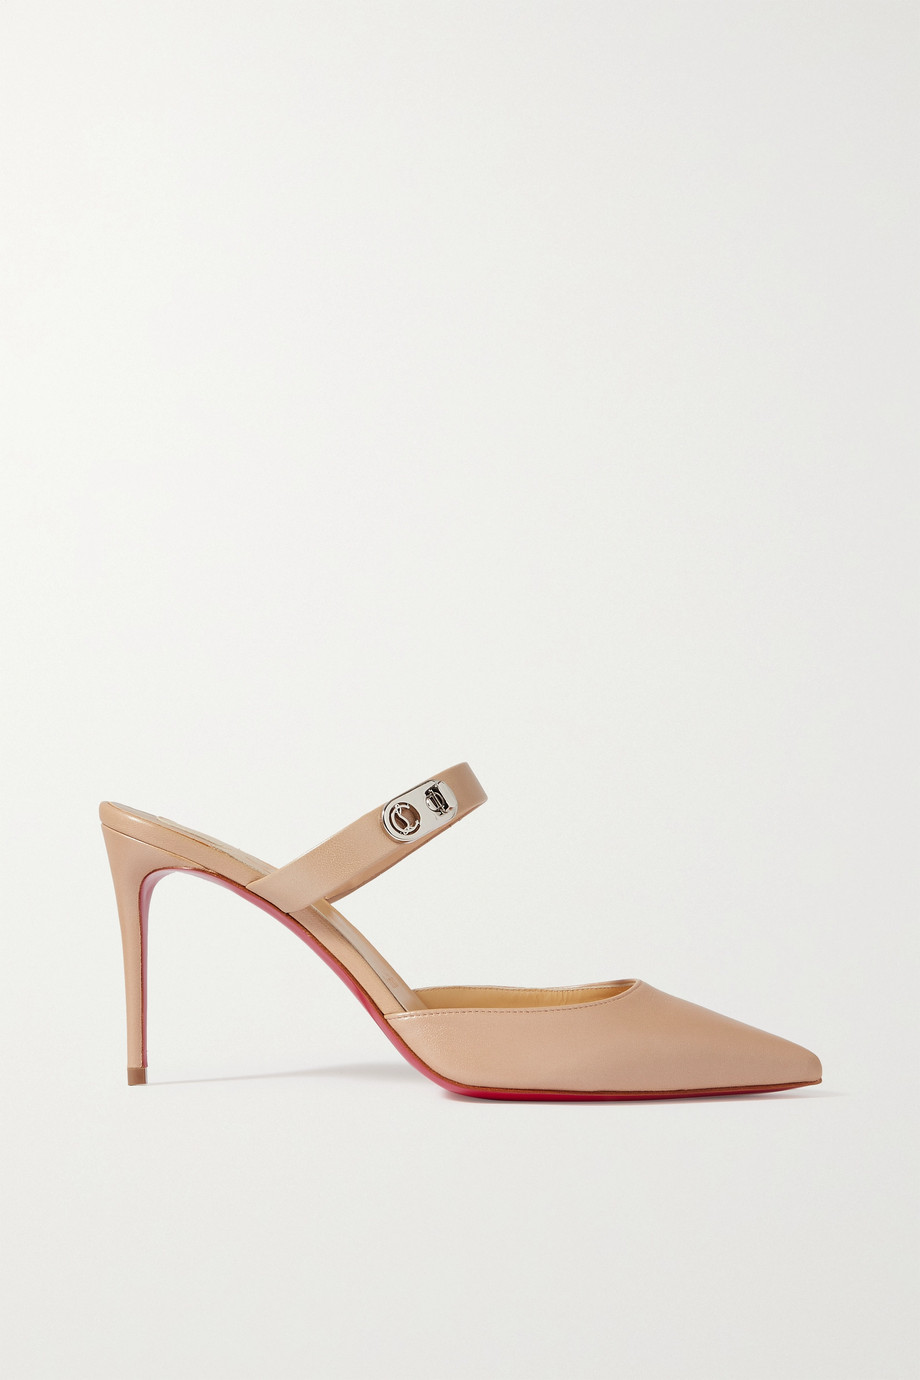 Christian Louboutin Choc Lock 85 leather mules